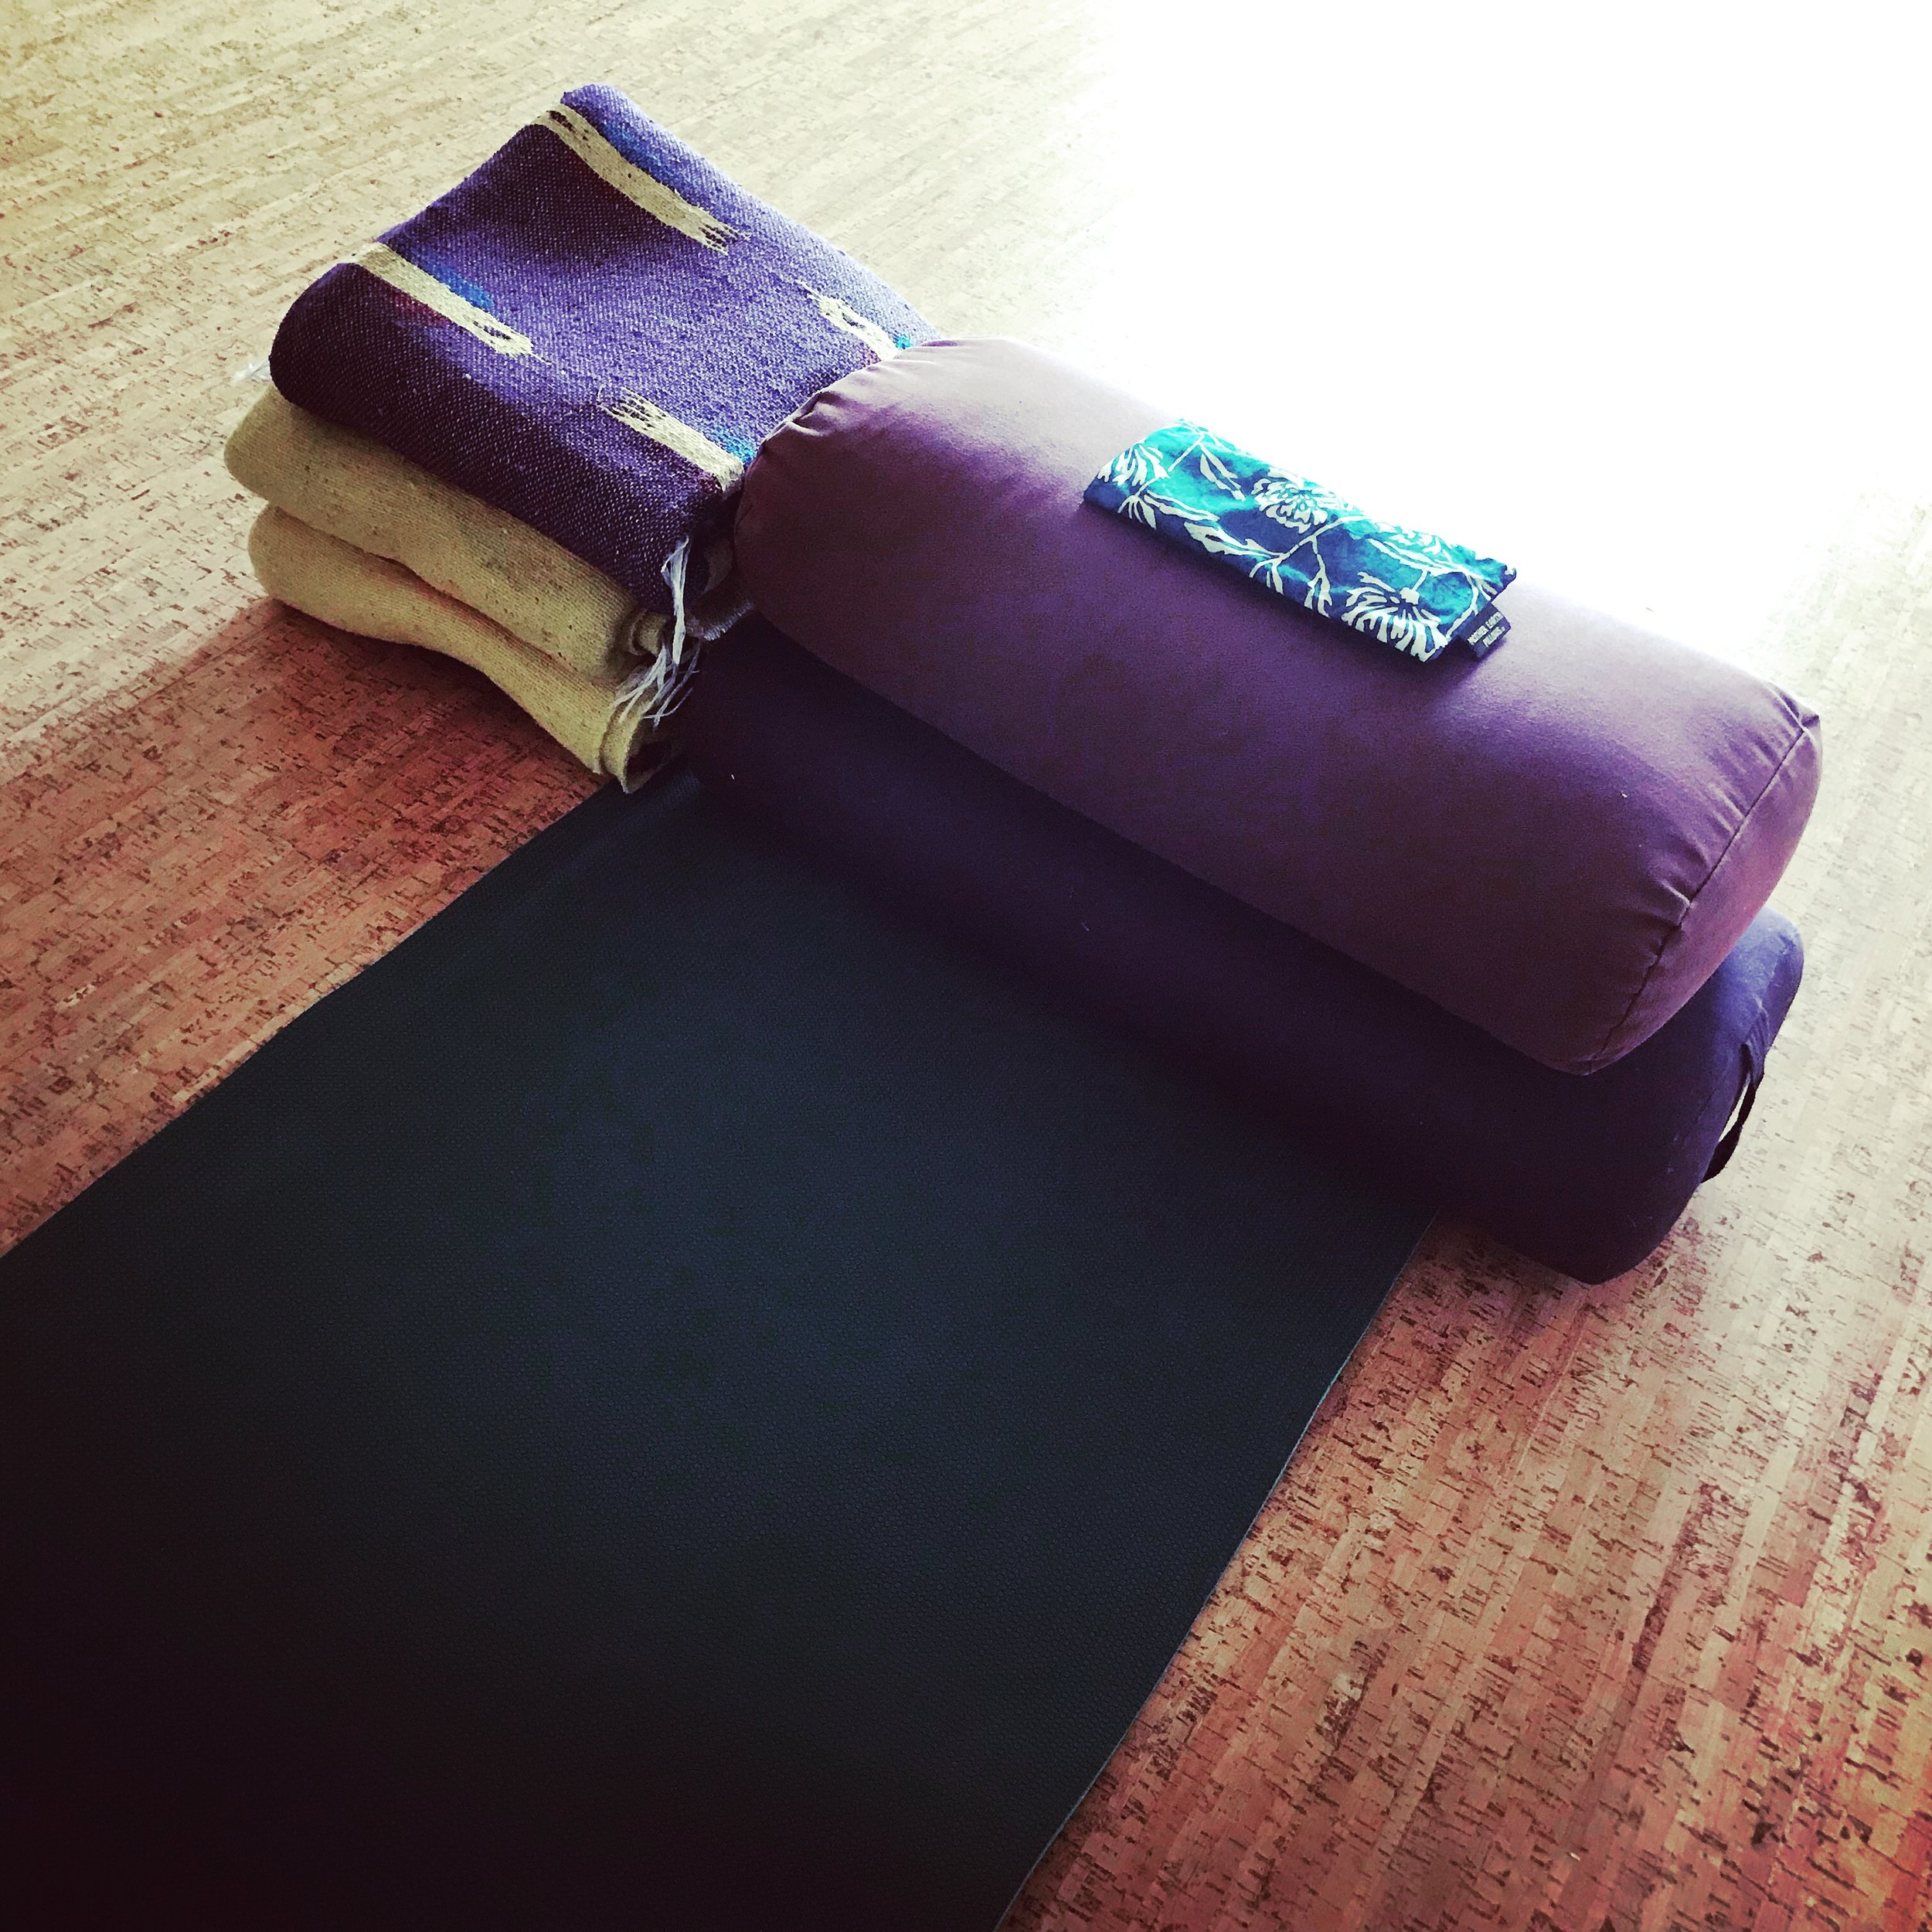 Proppage   Yoga props change practice. Use in restorative and active practices to find nuance, breath and accessibility.